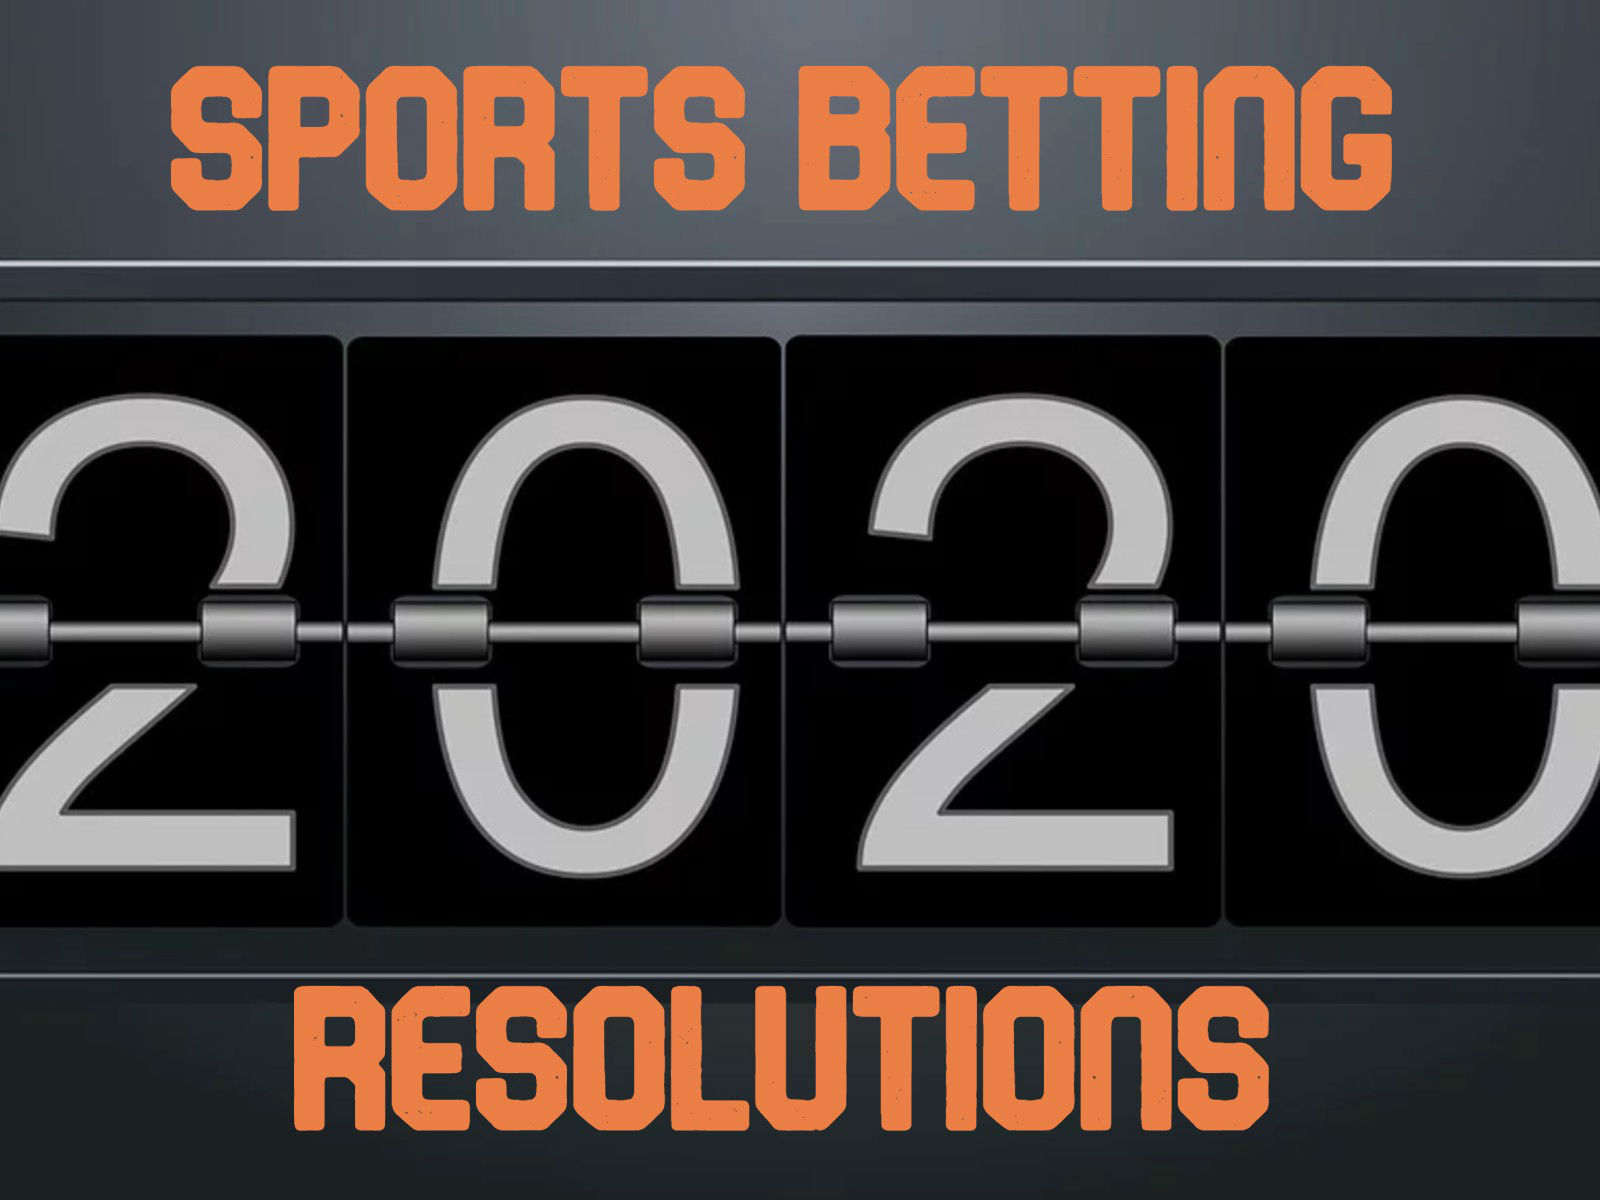 Betting pro darts wallpaper betting 2000 quote pdfs